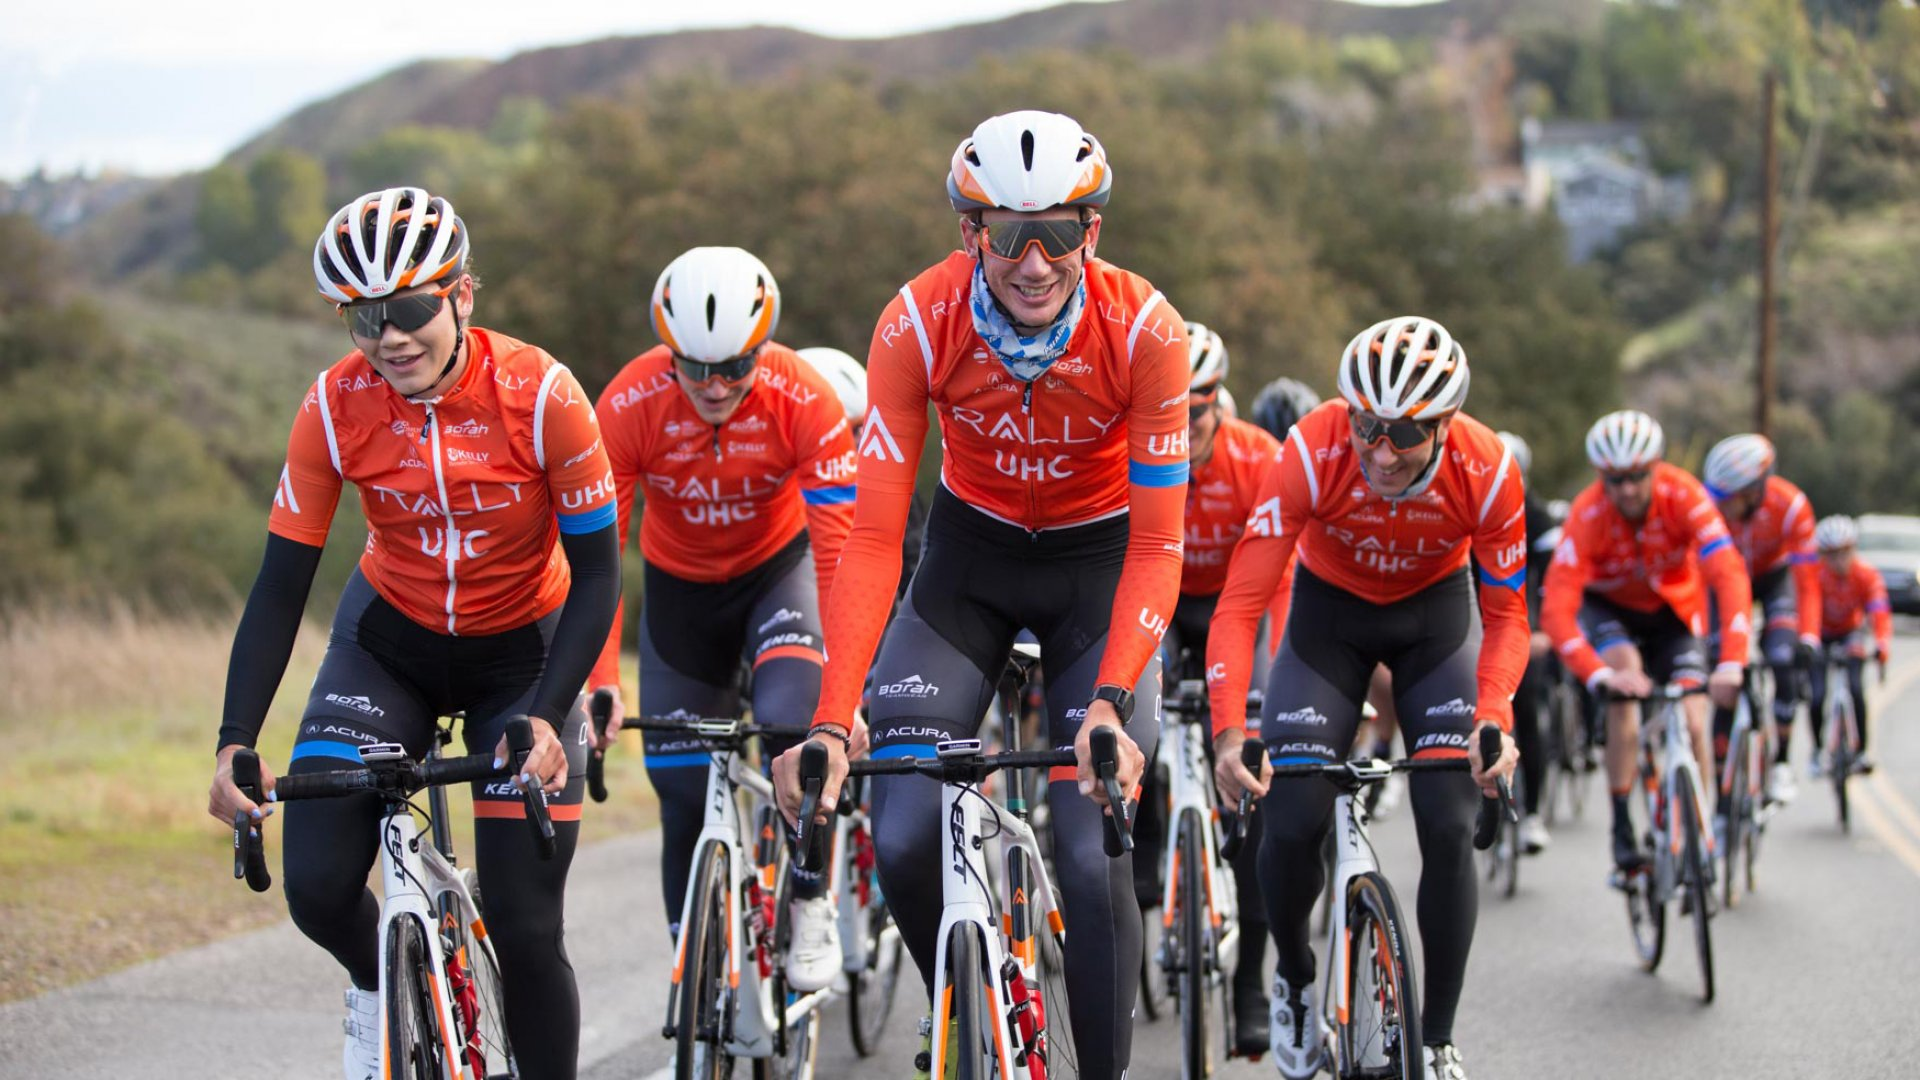 The Rally UHC Cycling team.